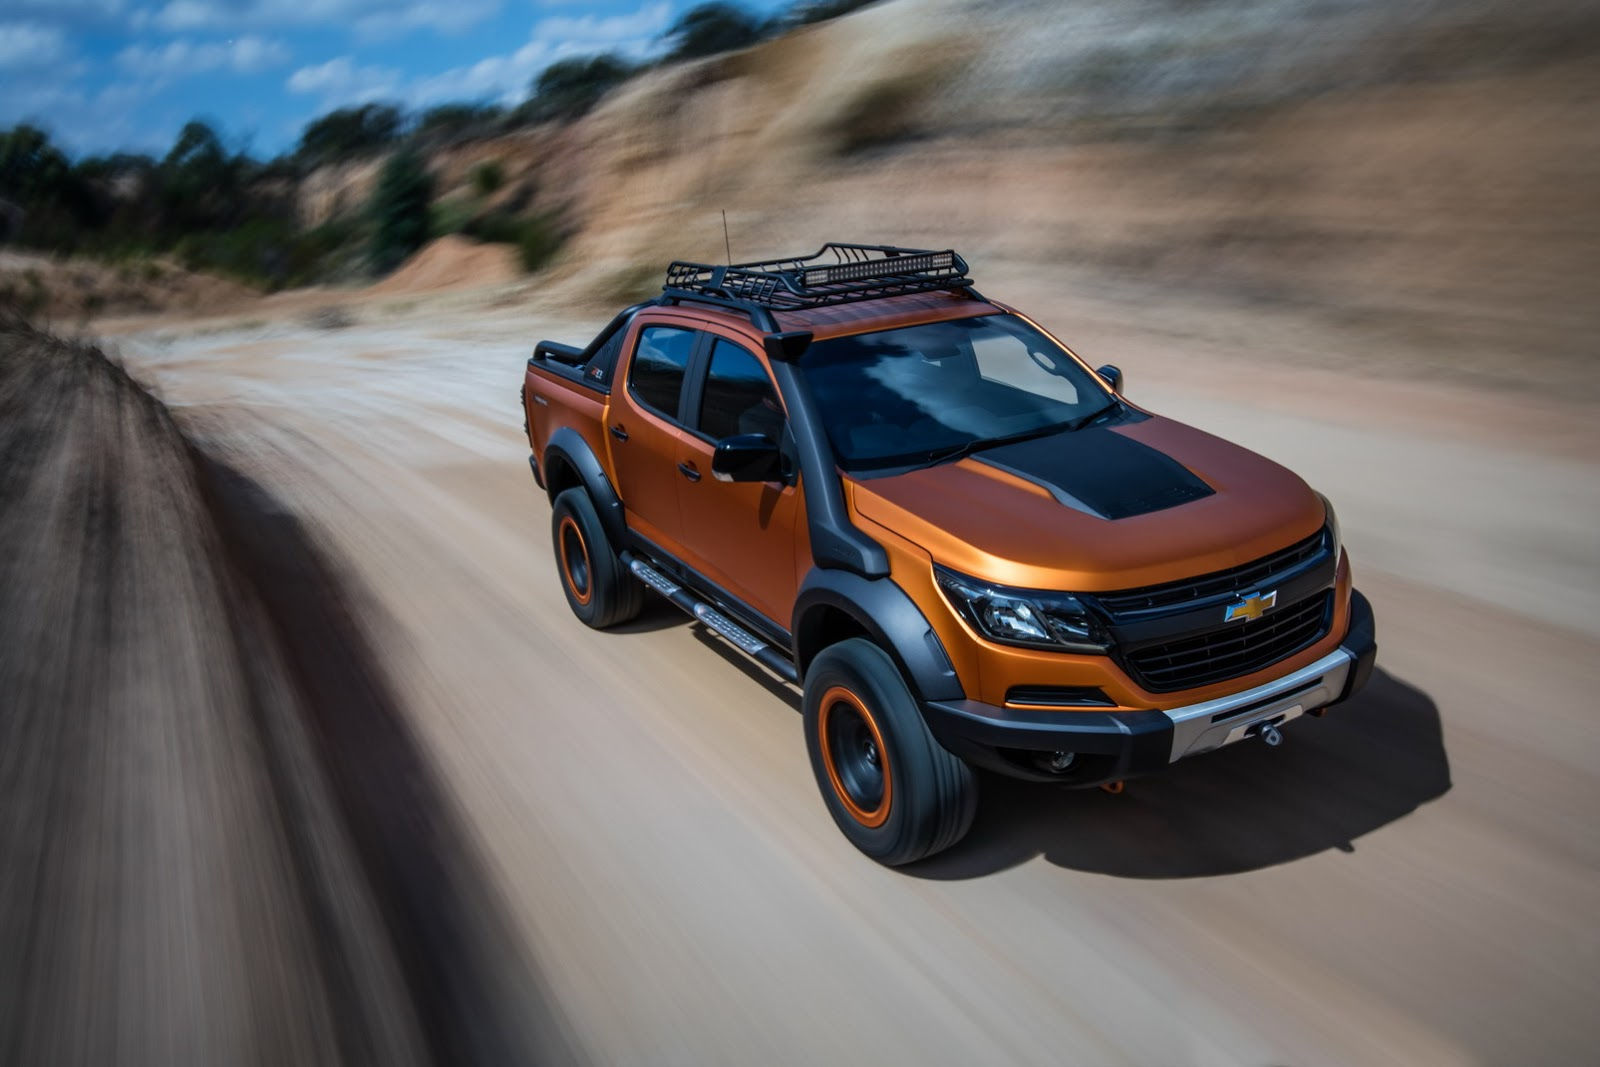 Chevy Colorado Xtreme >> Chevrolet Colorado Xtreme Study Previews The Global Model's Facelift - carscoops.com